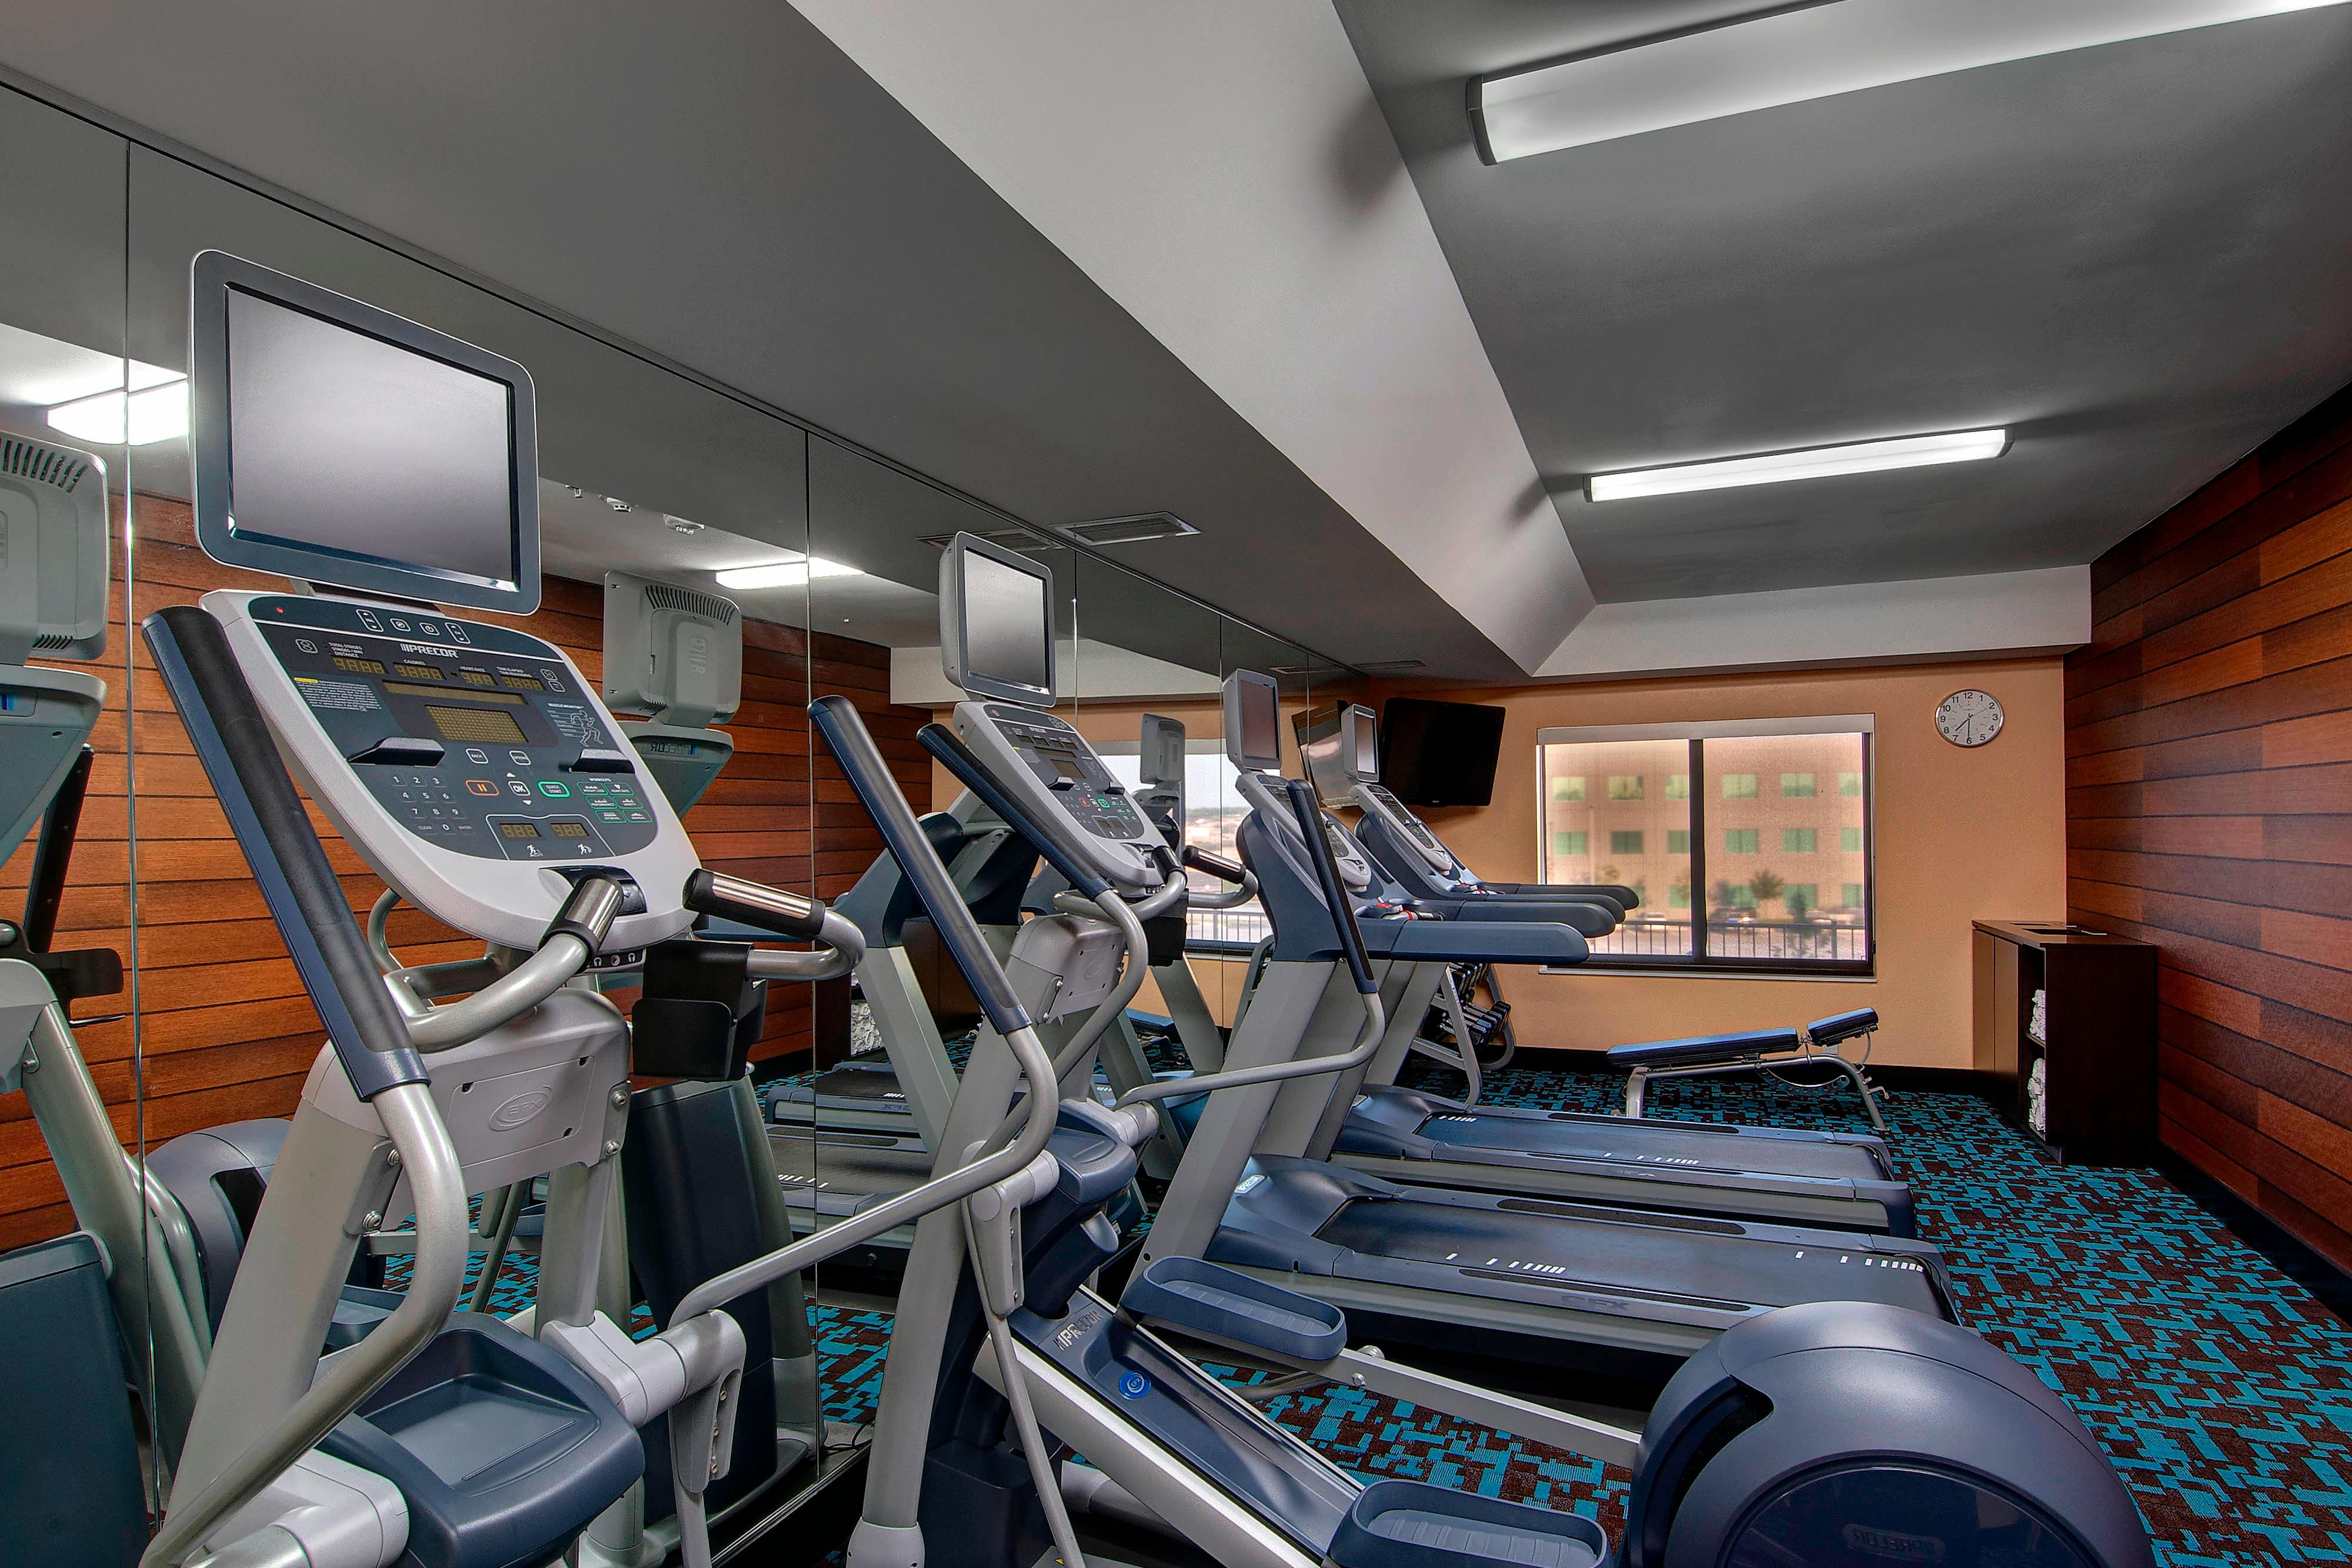 Fort Worth Hotel Fitness Center